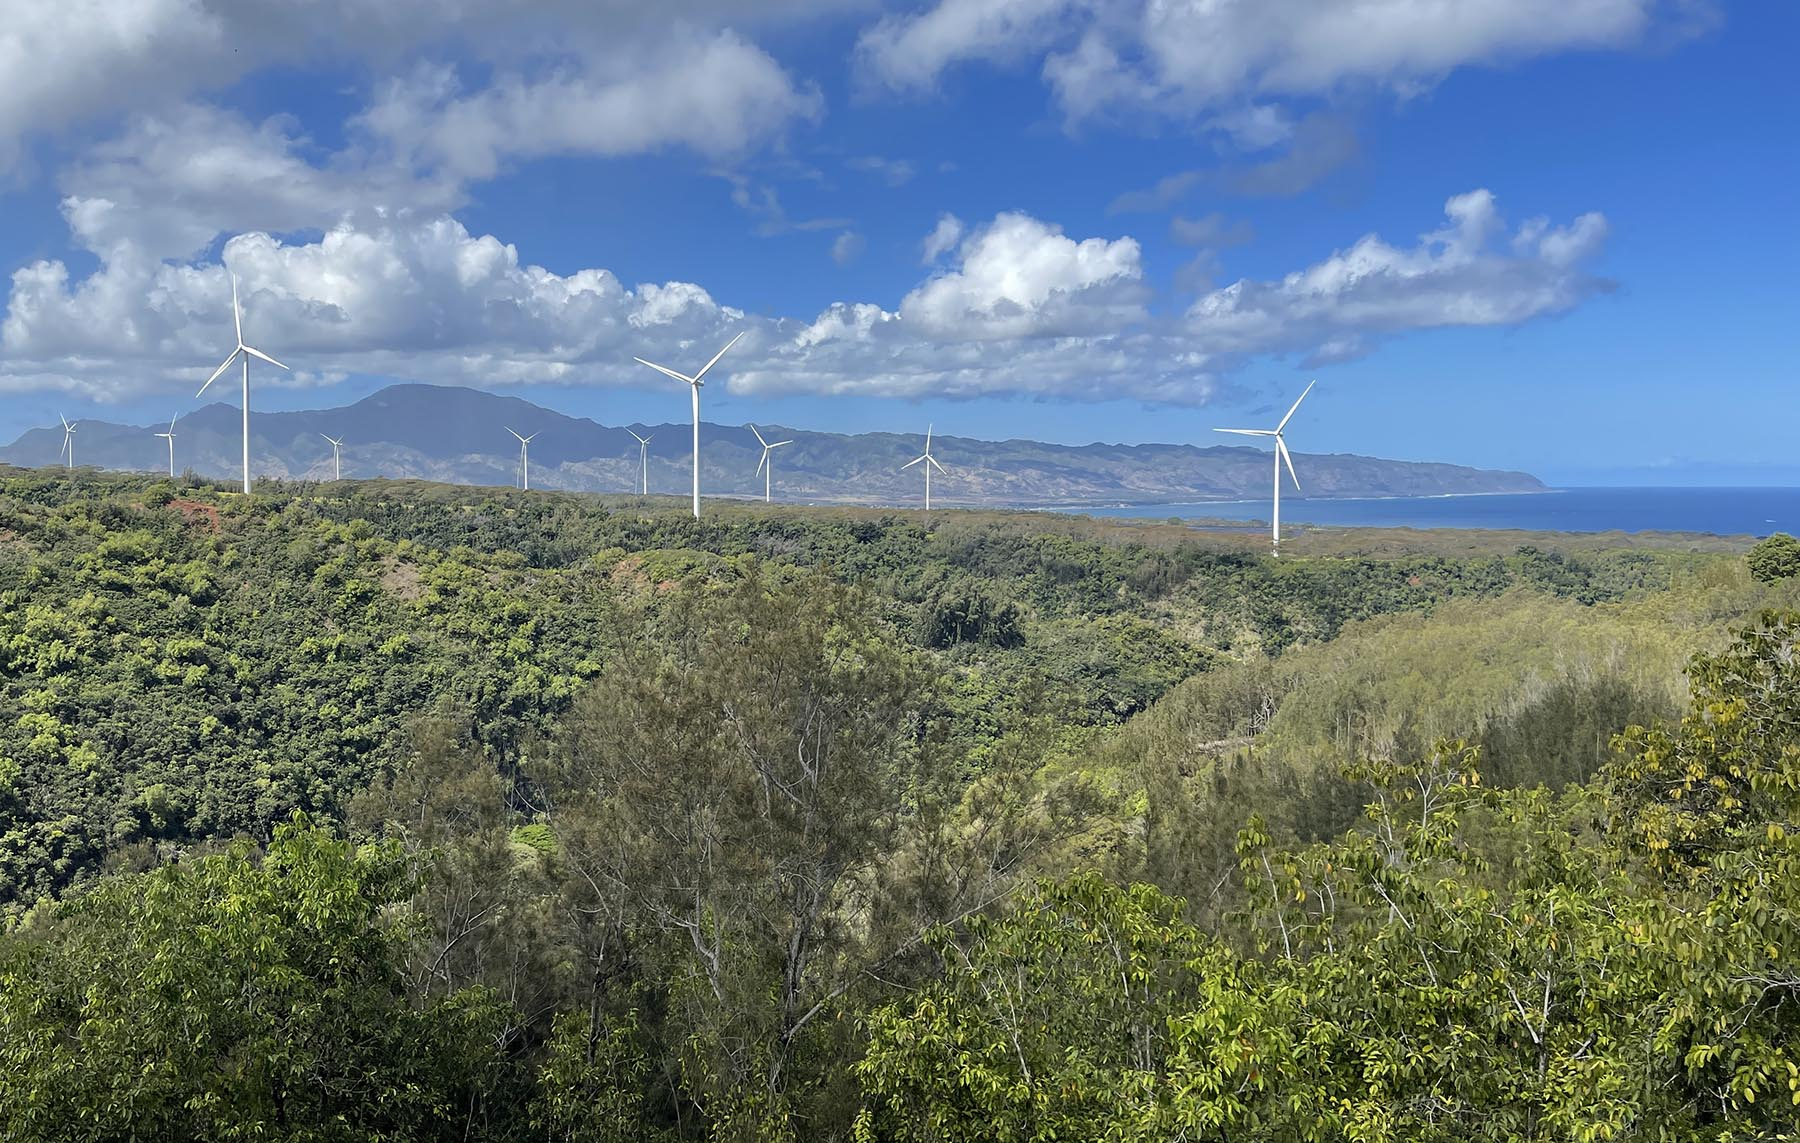 <p>The volunteer opportunity provides spectacular views of the ocean off Oahu's North Shore.</p>